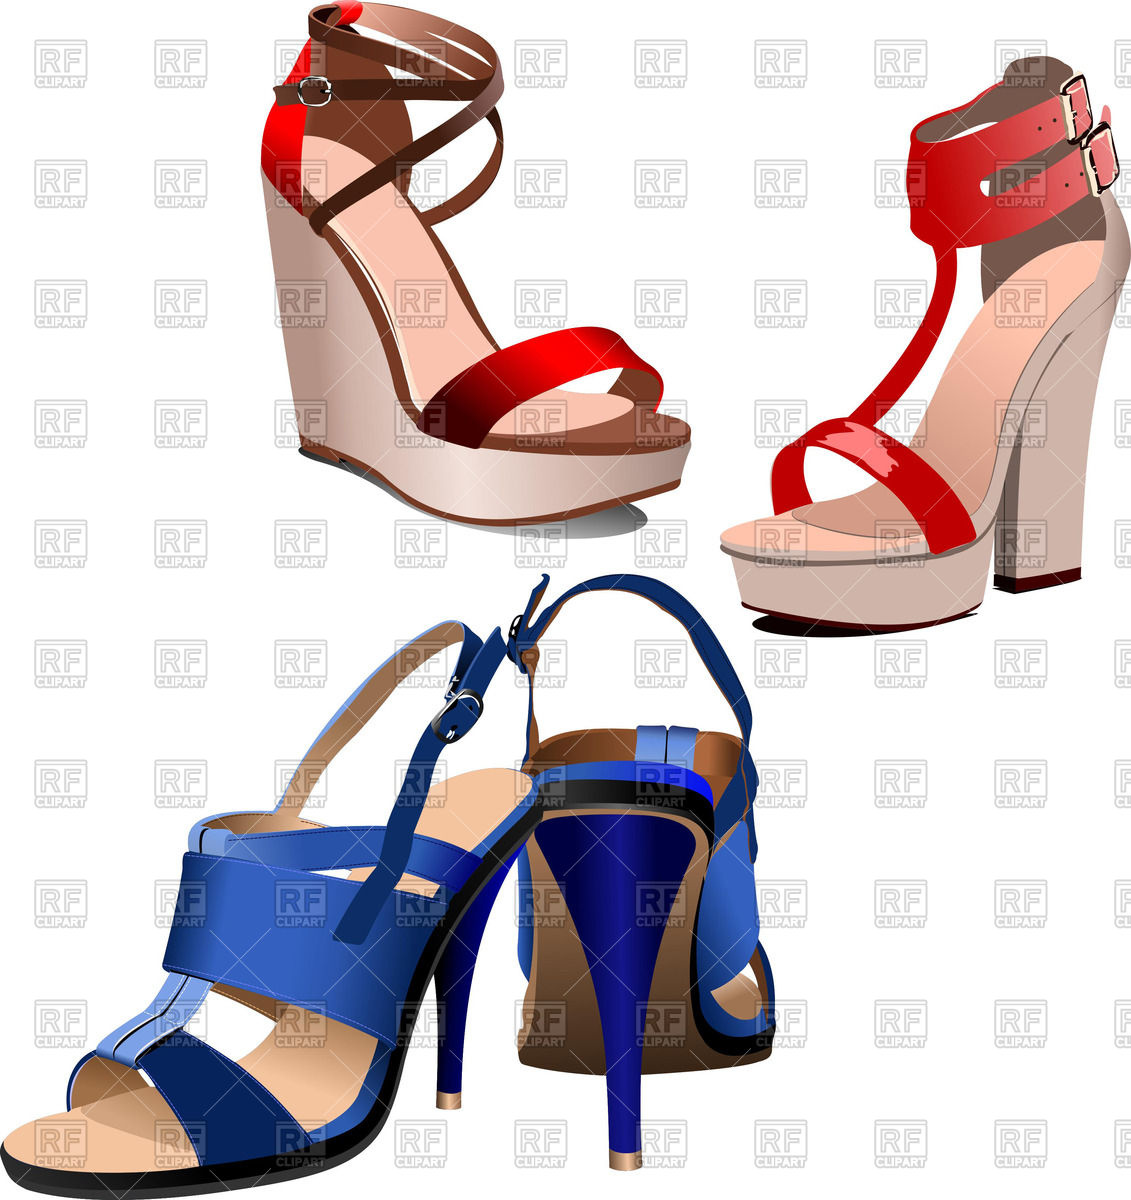 1131x1200 Stylish Female High Heeled Shoes Royalty Free Vector Clip Art